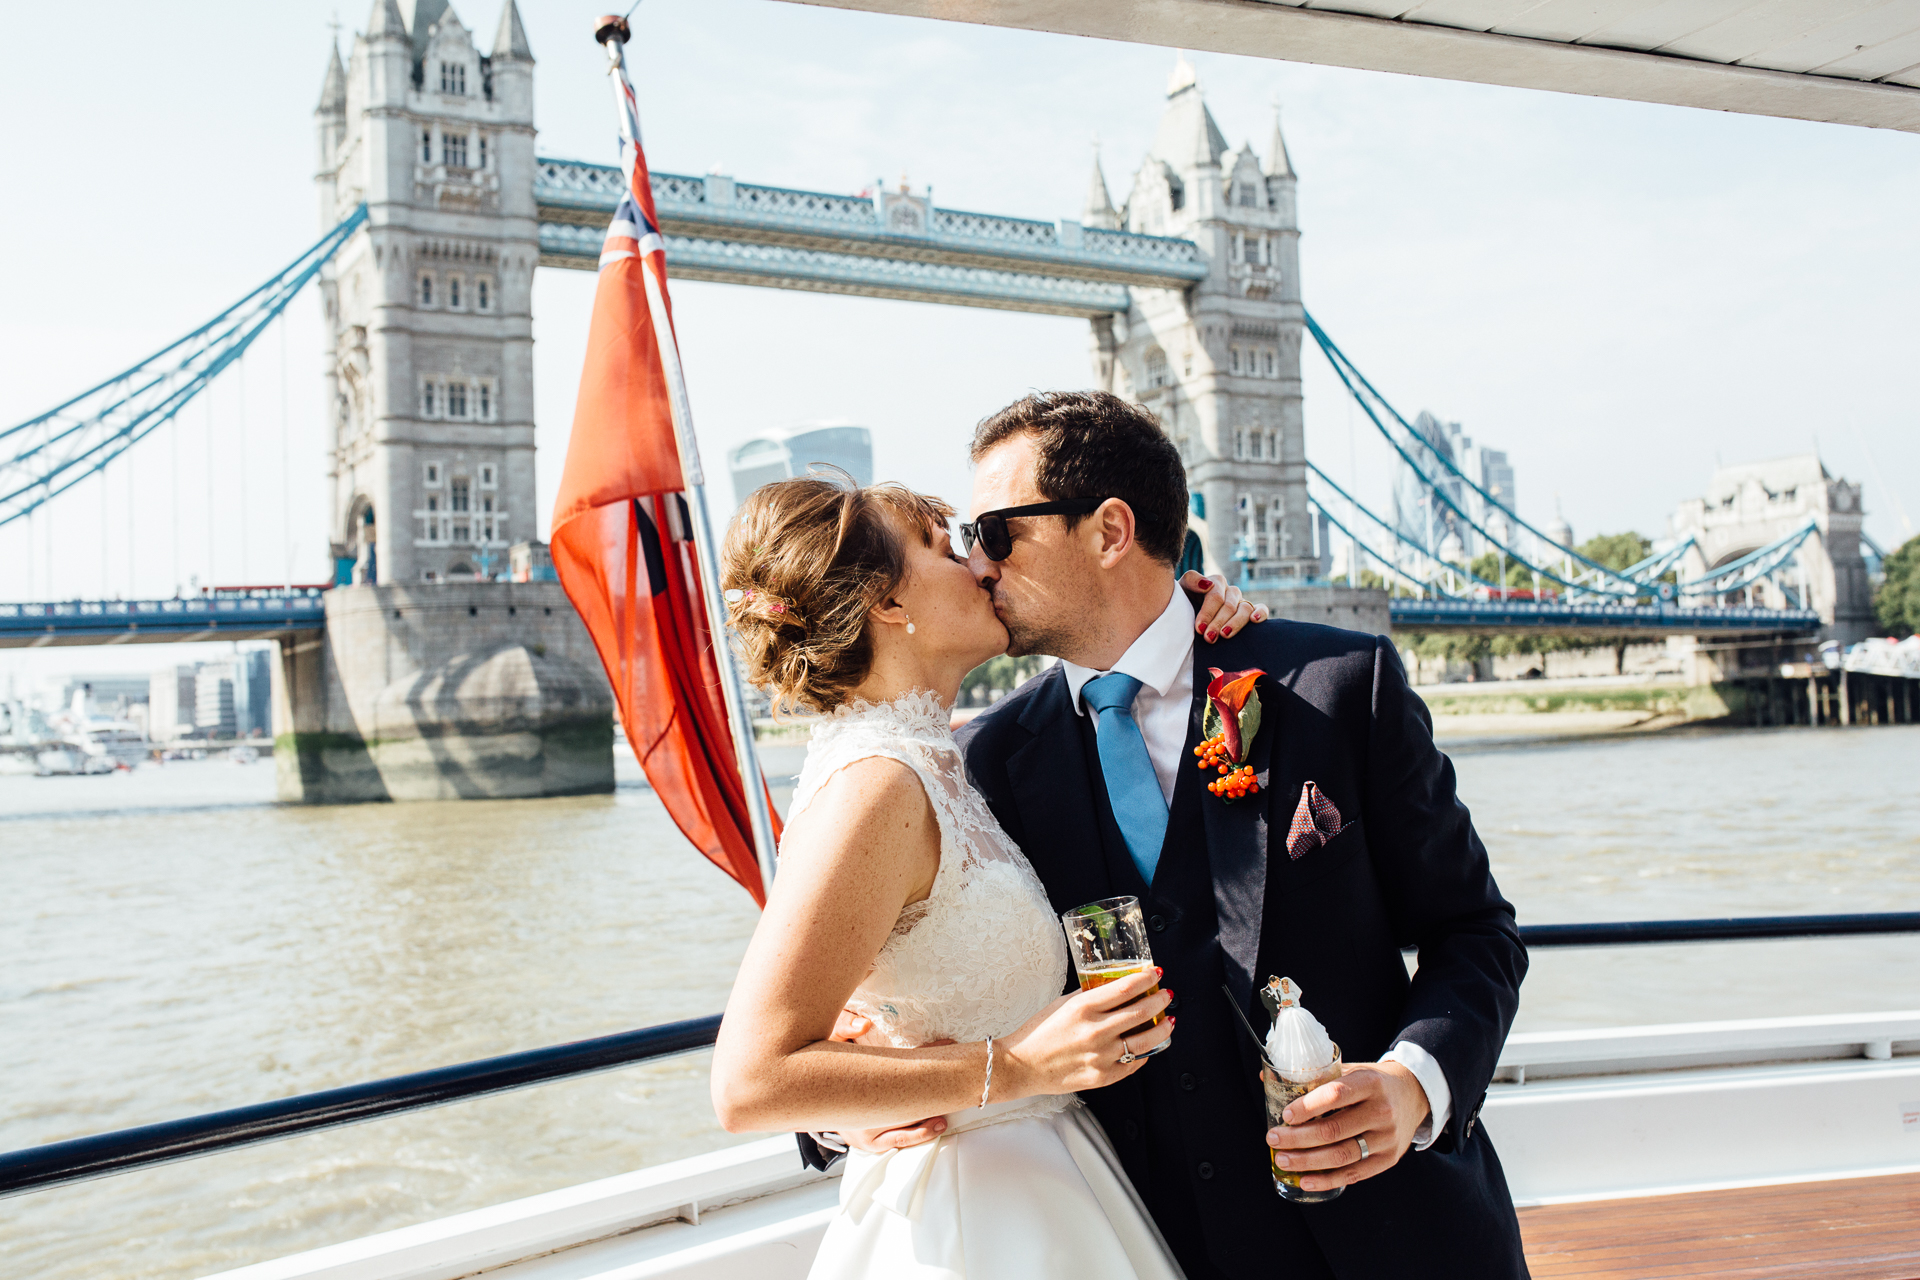 A bride and groom kissing with Tower Bridge in the background, on board the Erasmus luxury Thames by Kent wedding photographer Matilda Delves